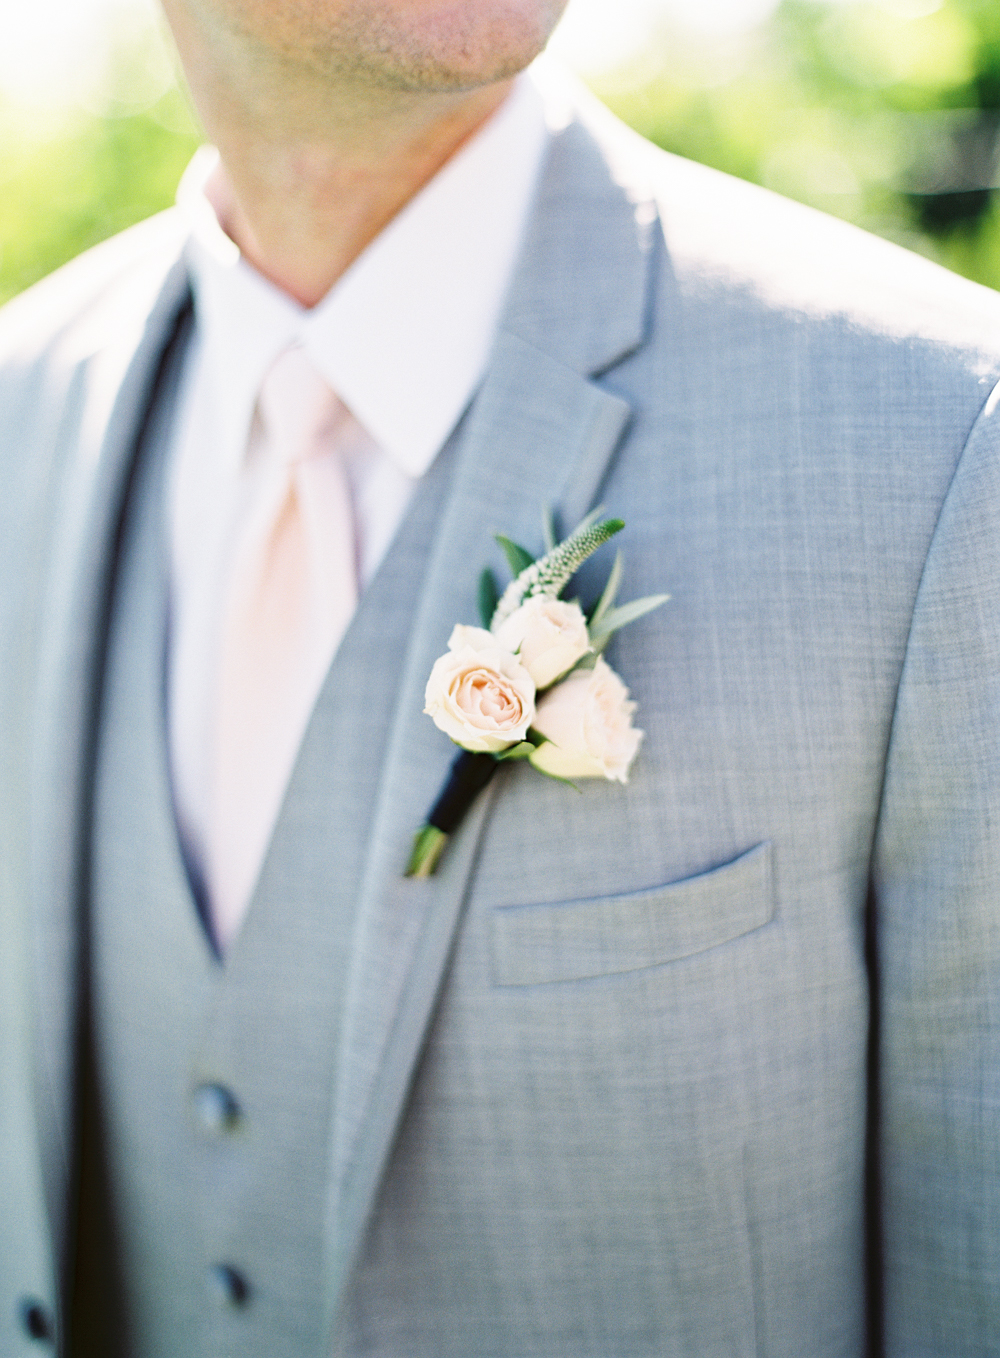 Posh Peony bouttoniere | Grey three piece suit | Mount Palomar Winery Wedding | Blush and Lavender | San Diego wedding photographer | Temecula wedding photographer | Southern California film photographer | Whiskers and Willow Photography